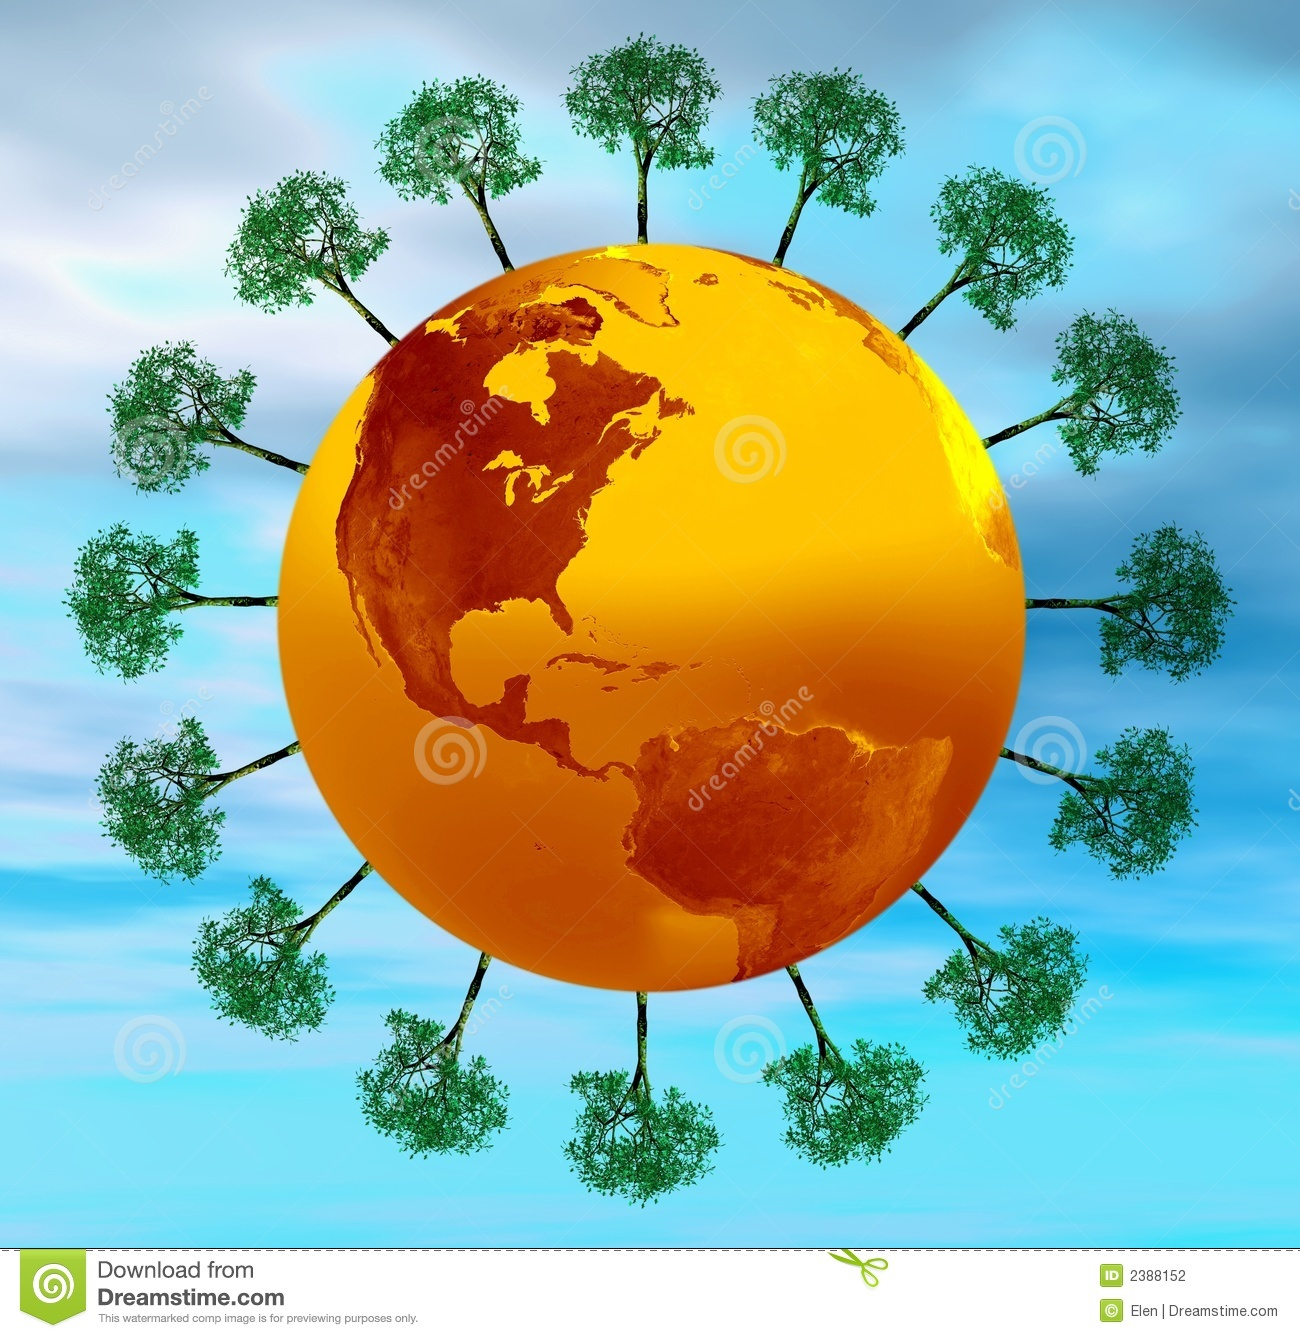 how to keep earth green